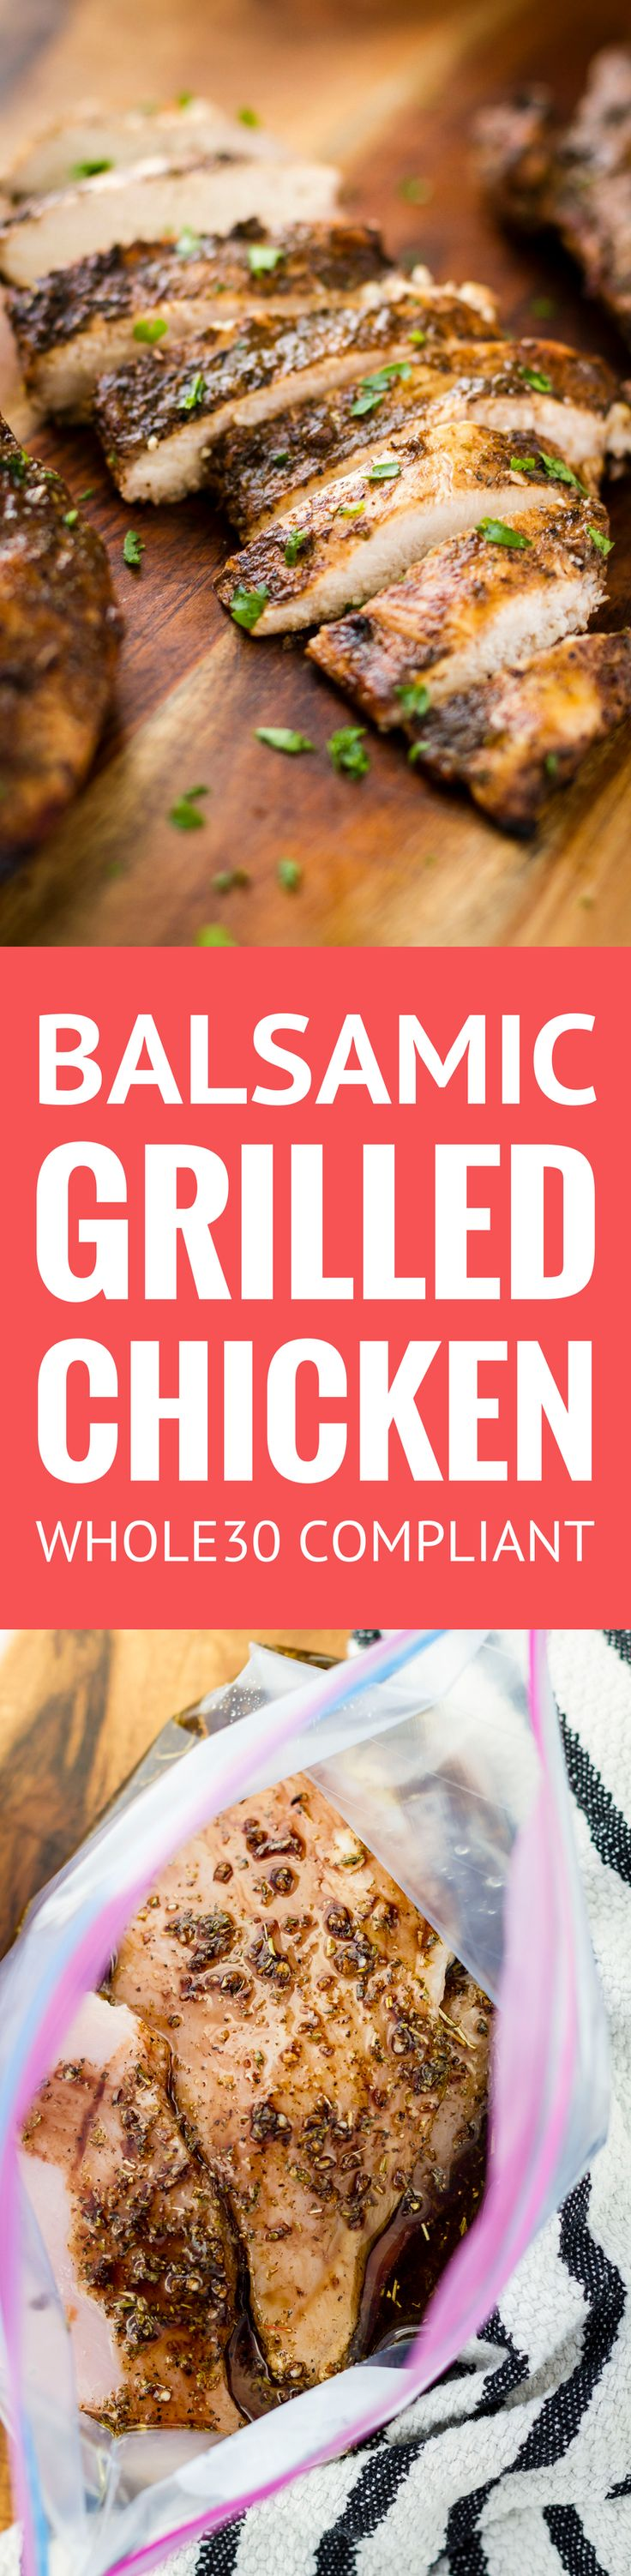 Juicy Balsamic Grilled Chicken -- this balsamic grilled chicken recipe makes the most juicy and succulent boneless skinless breasts EVER with just 4 ingredients and 30 minutes of marinating time! And it's Whole30 compliant…   balsamic grilled chicken marinade   healthy balsamic grilled chicken   whole30 balsamic grilled chicken   find the recipe on unsophisticook.com